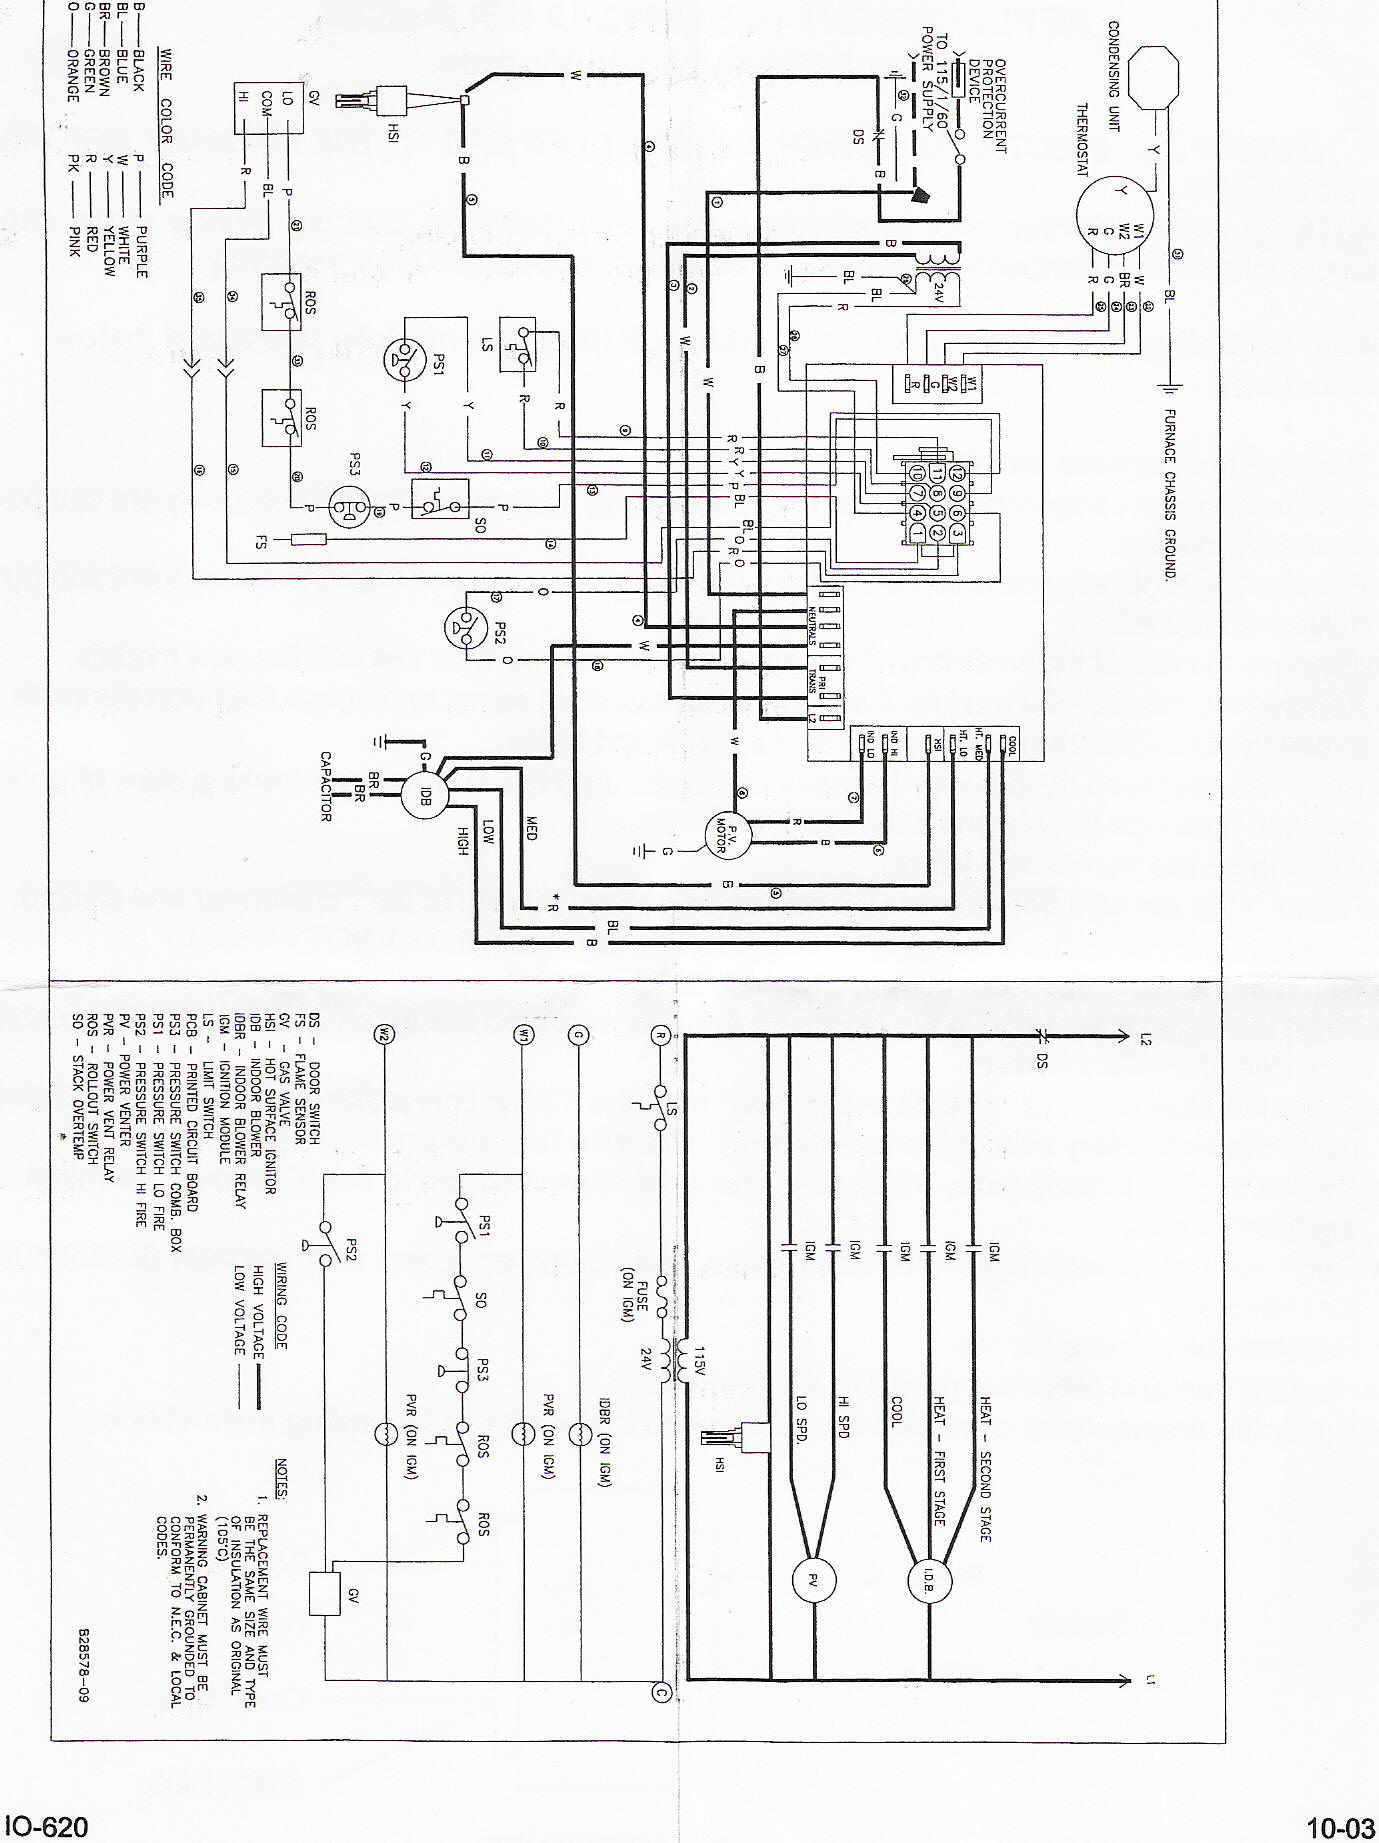 hight resolution of  wrg 4274 1170063 circuit board wiring diagram for honeywell gas furnace